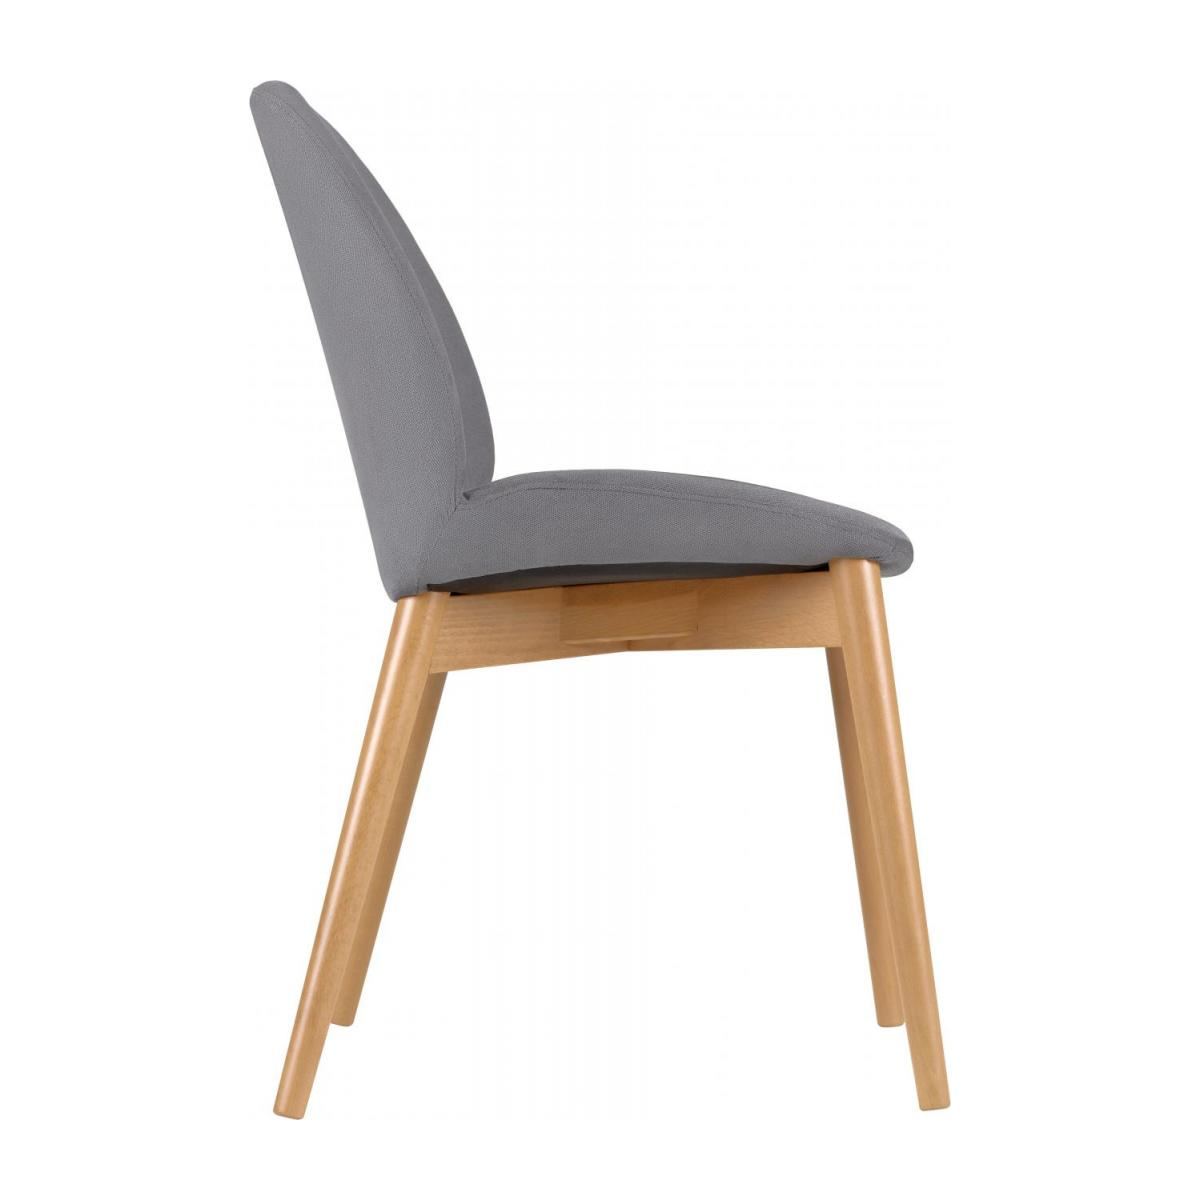 Chair with grey fabric cover and beech wood legs n°4